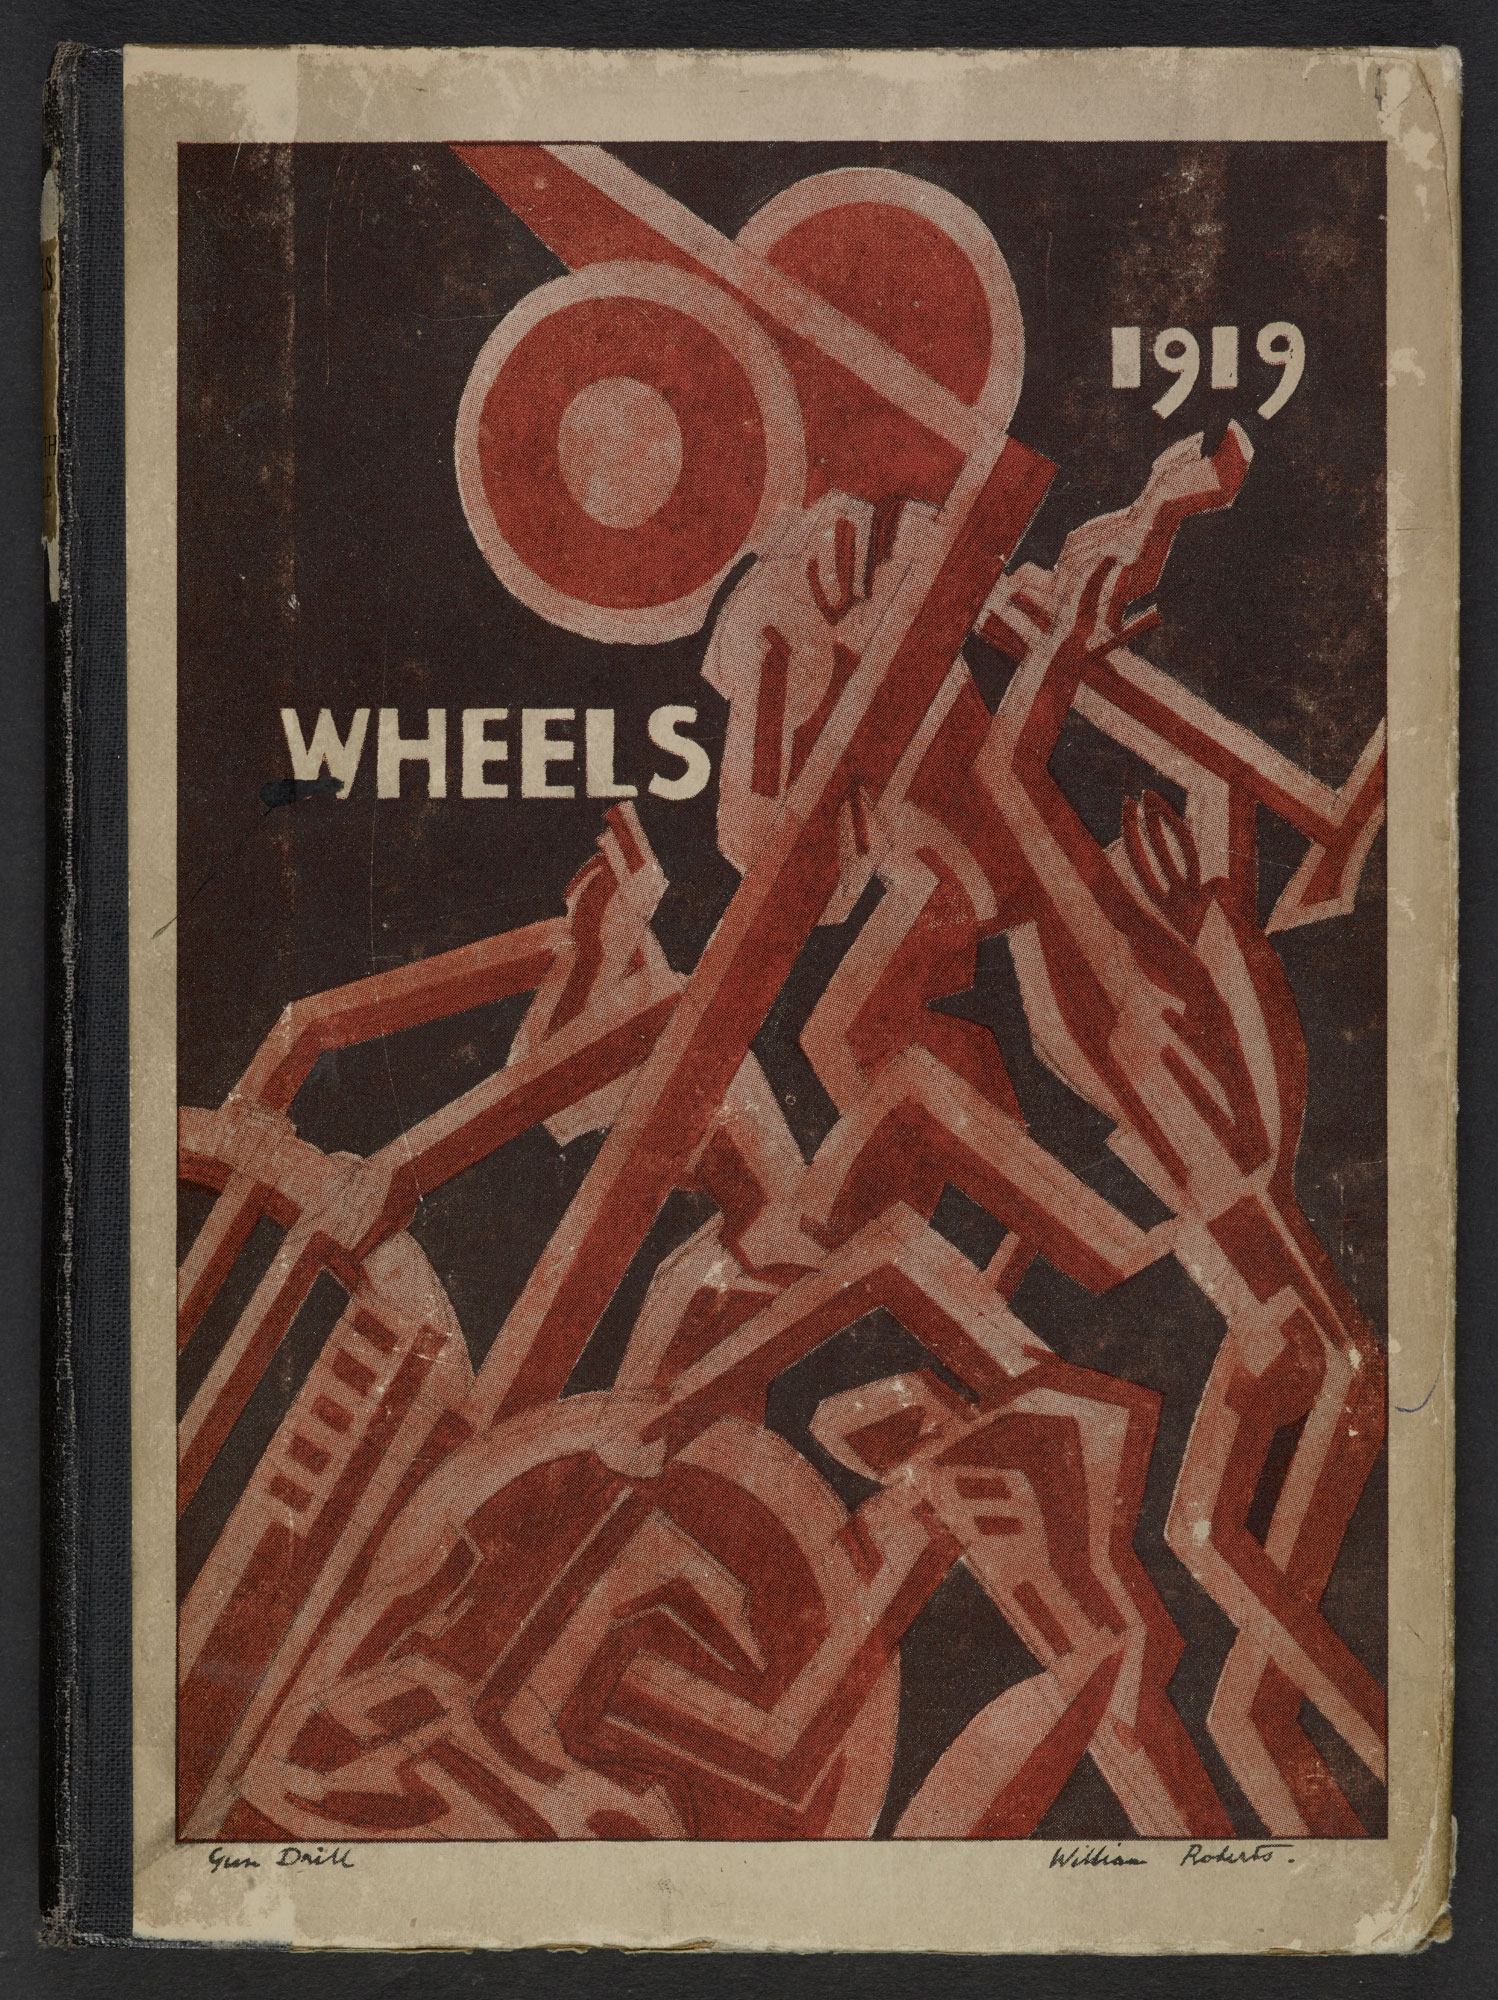 Poems of Wilfred Owen, published in Wheels